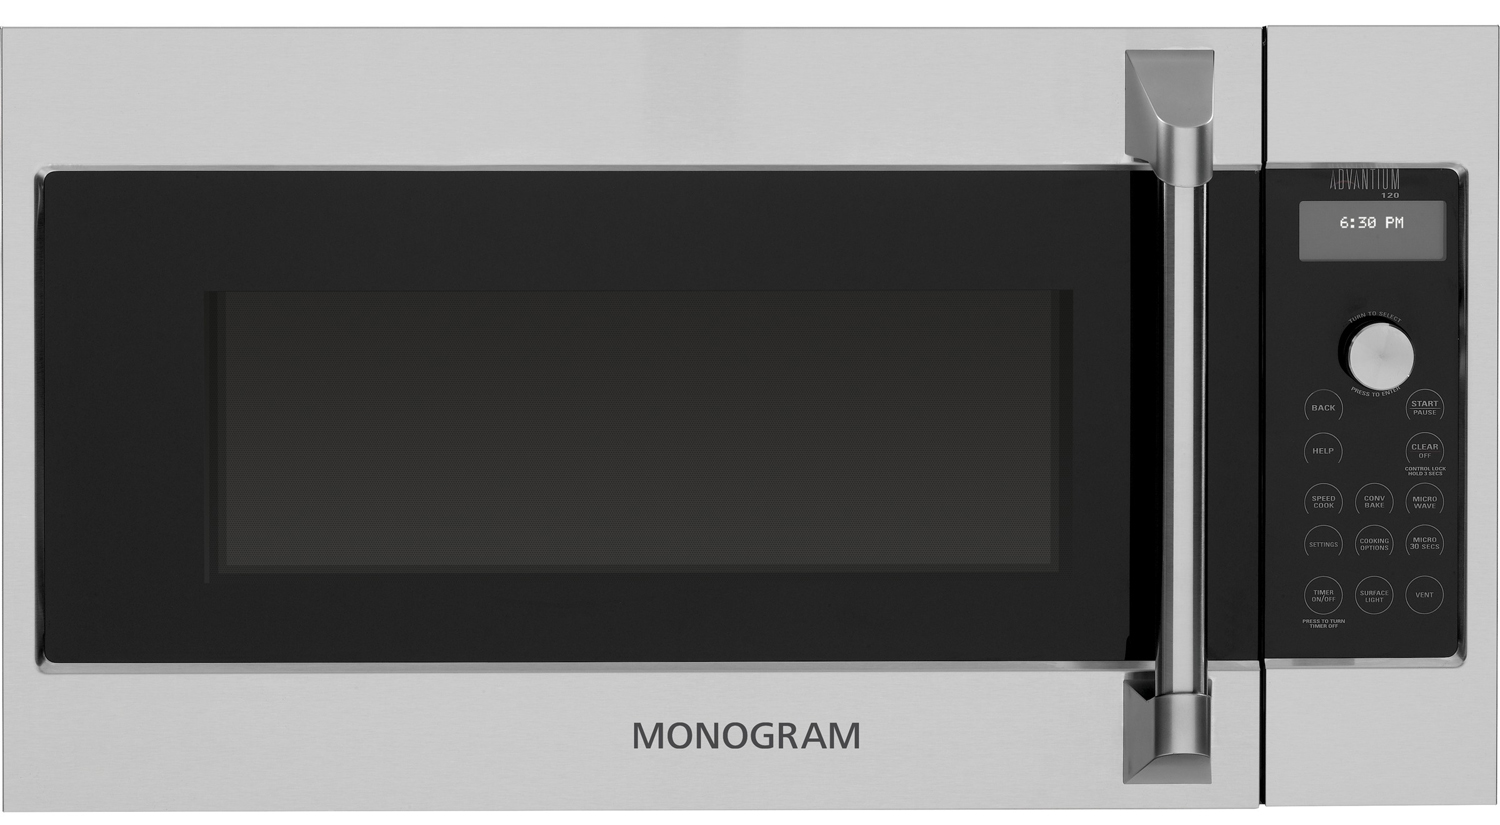 Monogram Over The Range Microwave Oven Zsa1202jss